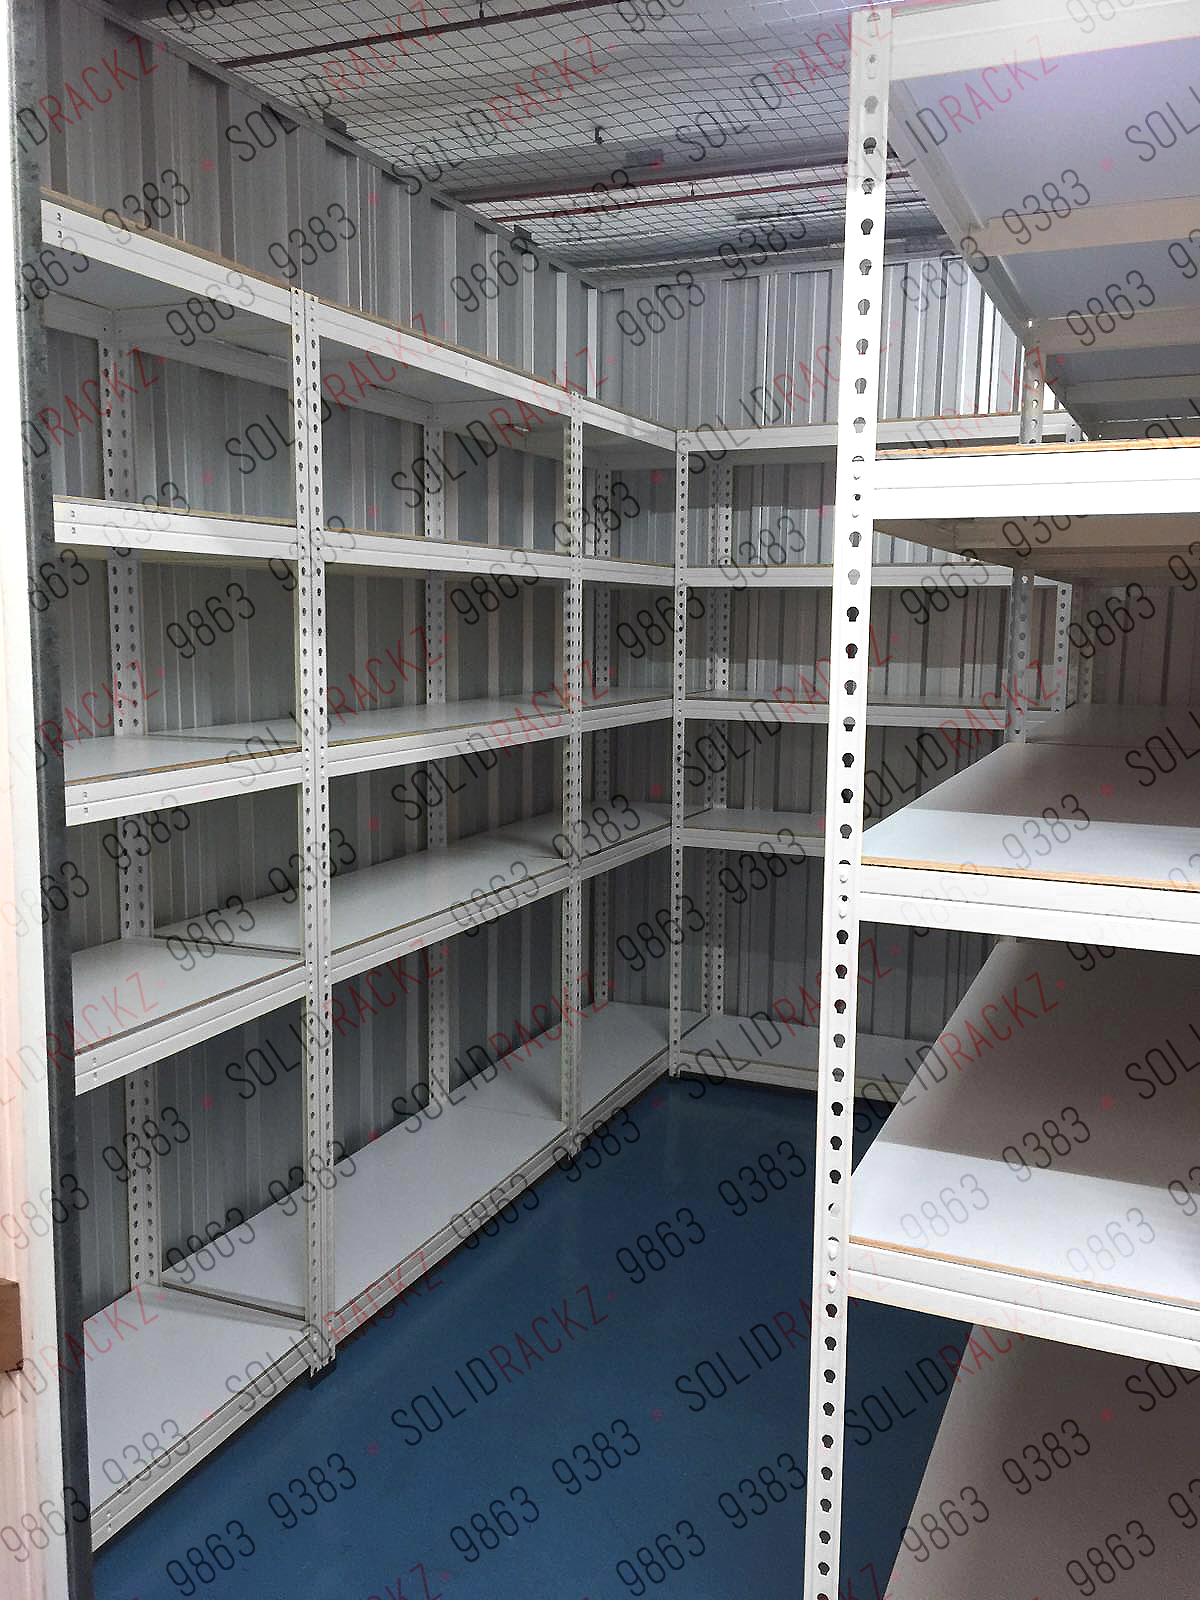 Storeroom Bombshelter Storage Rack For Hdb And Office